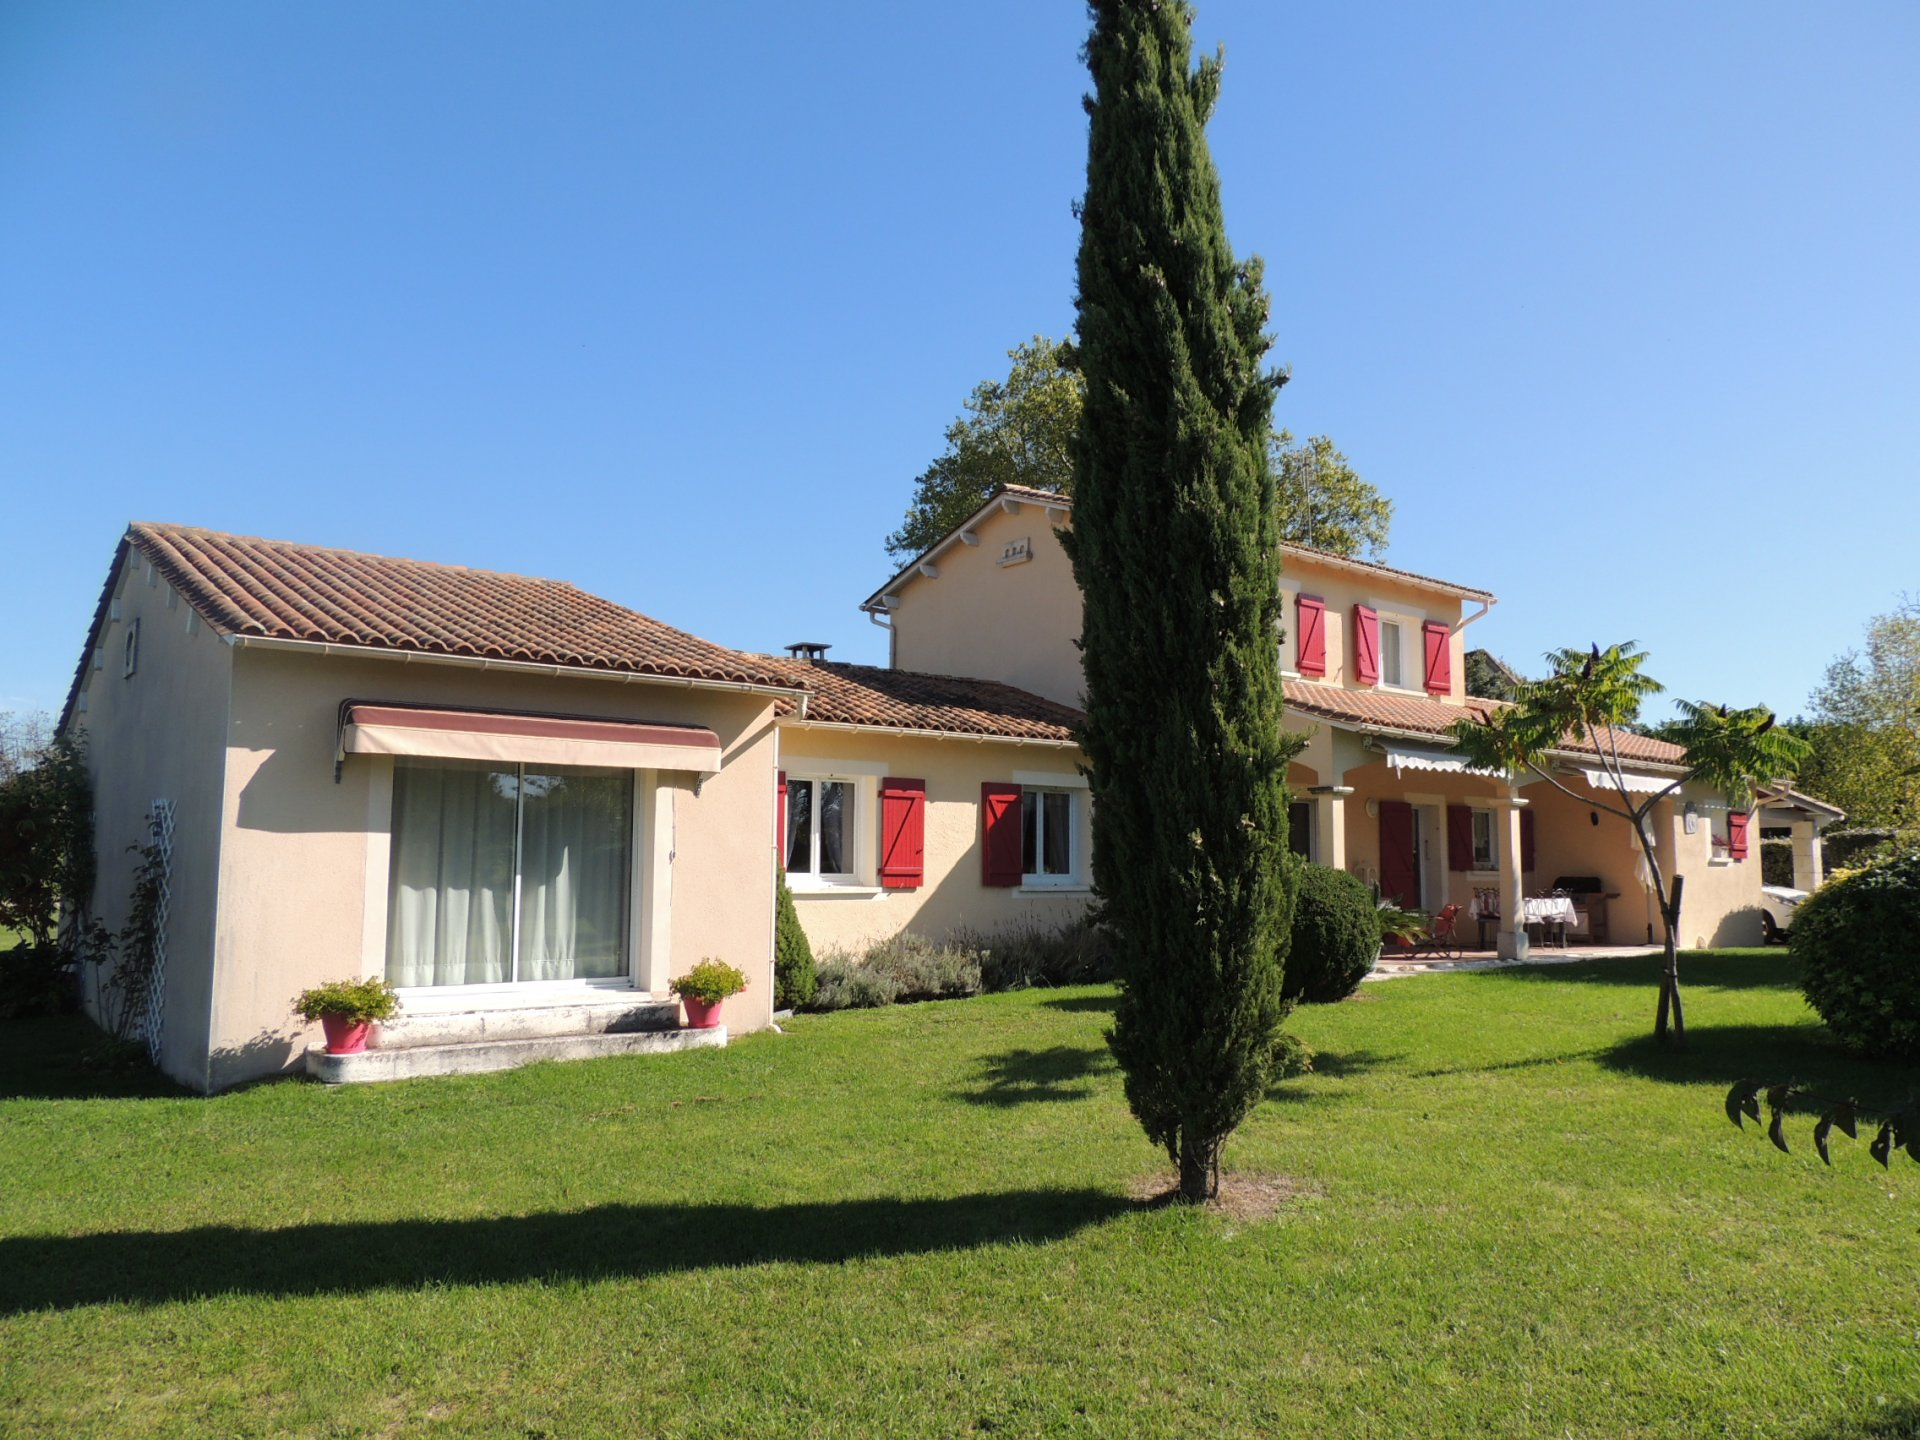 Immaculate house and heated pool - north Dordogne